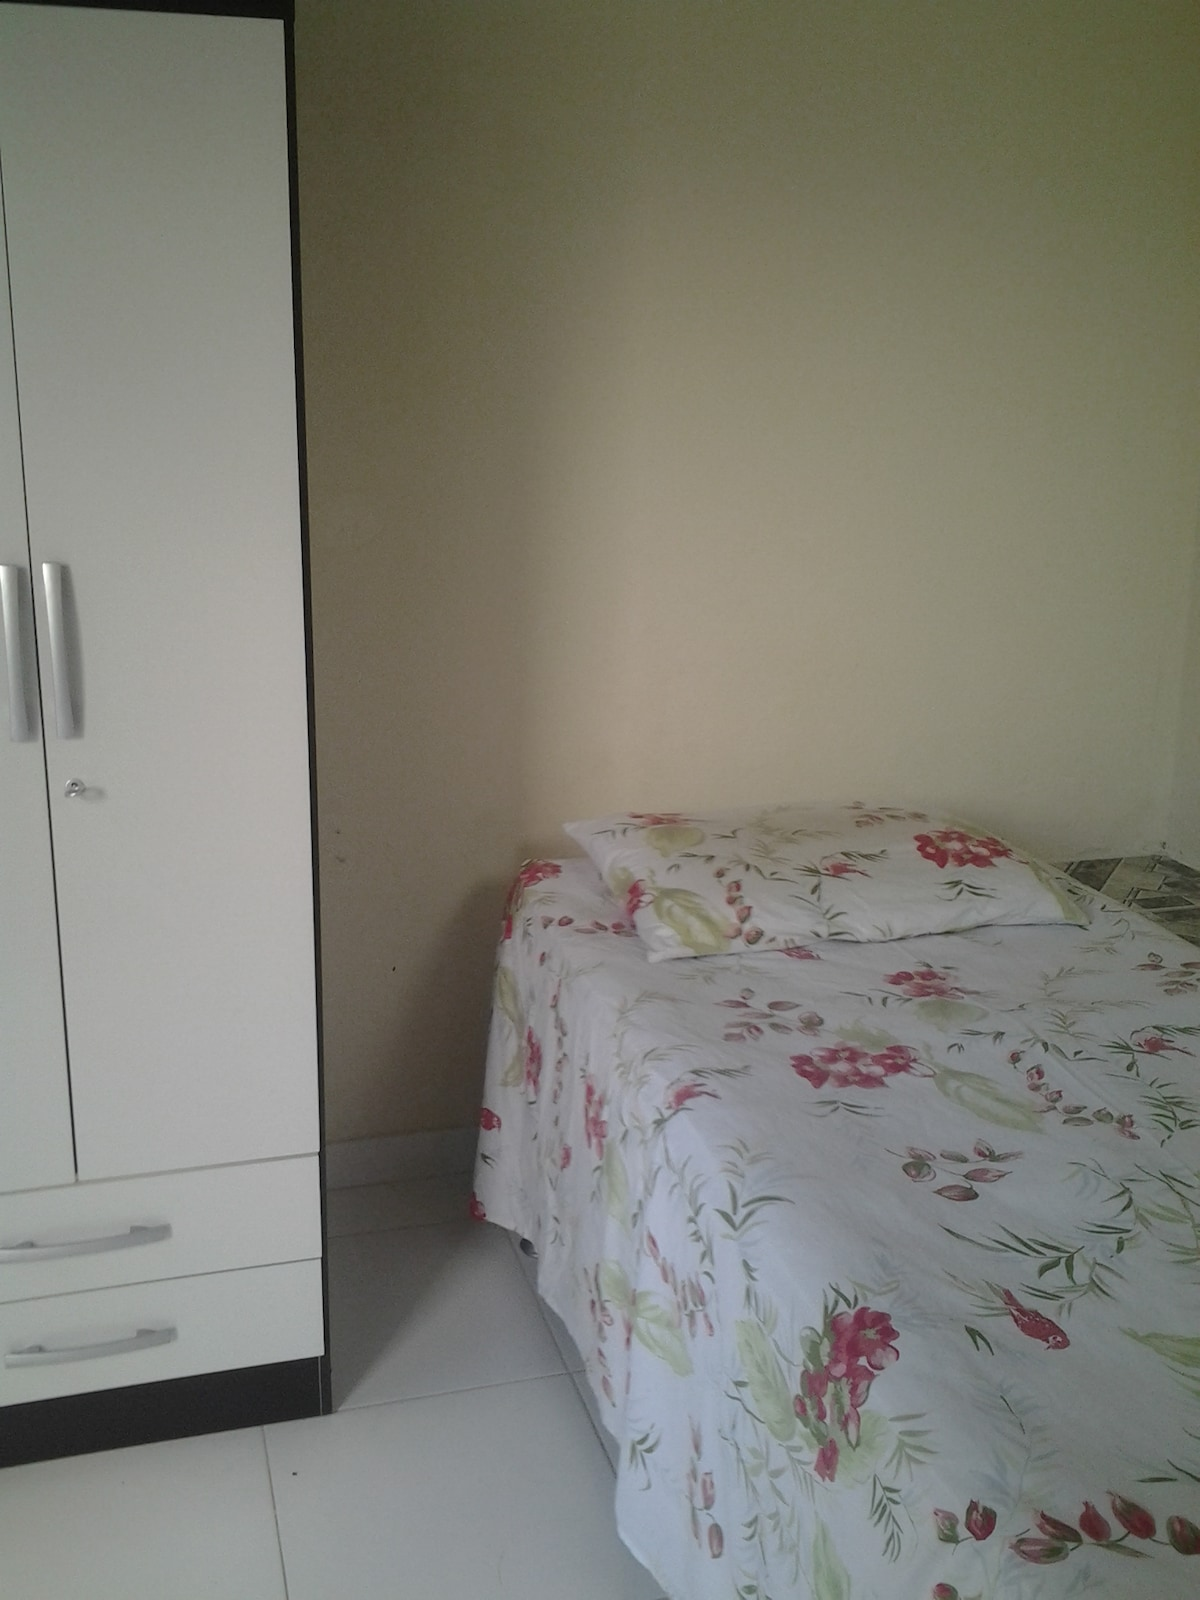 Here is the bedroom!